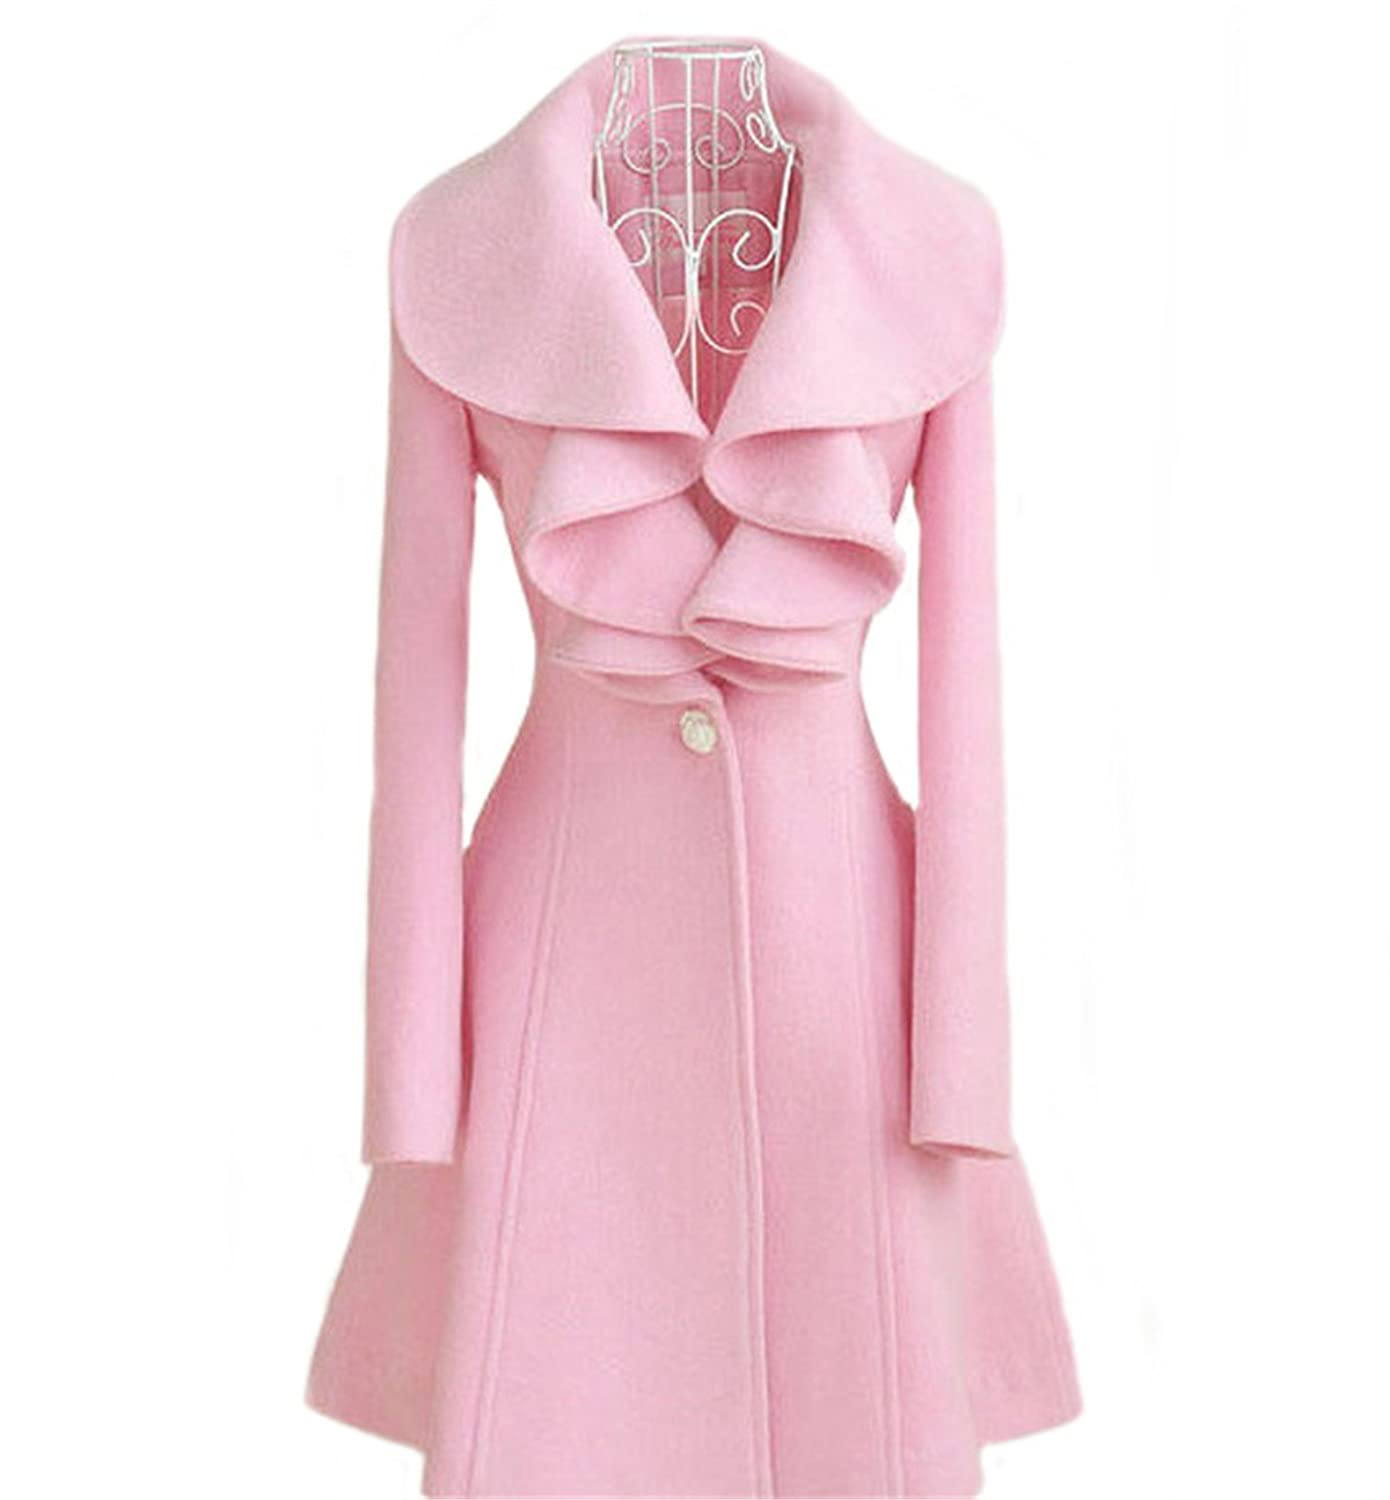 Allonly Women's Long sleeved Woolen One Button Jacket Trench Coat